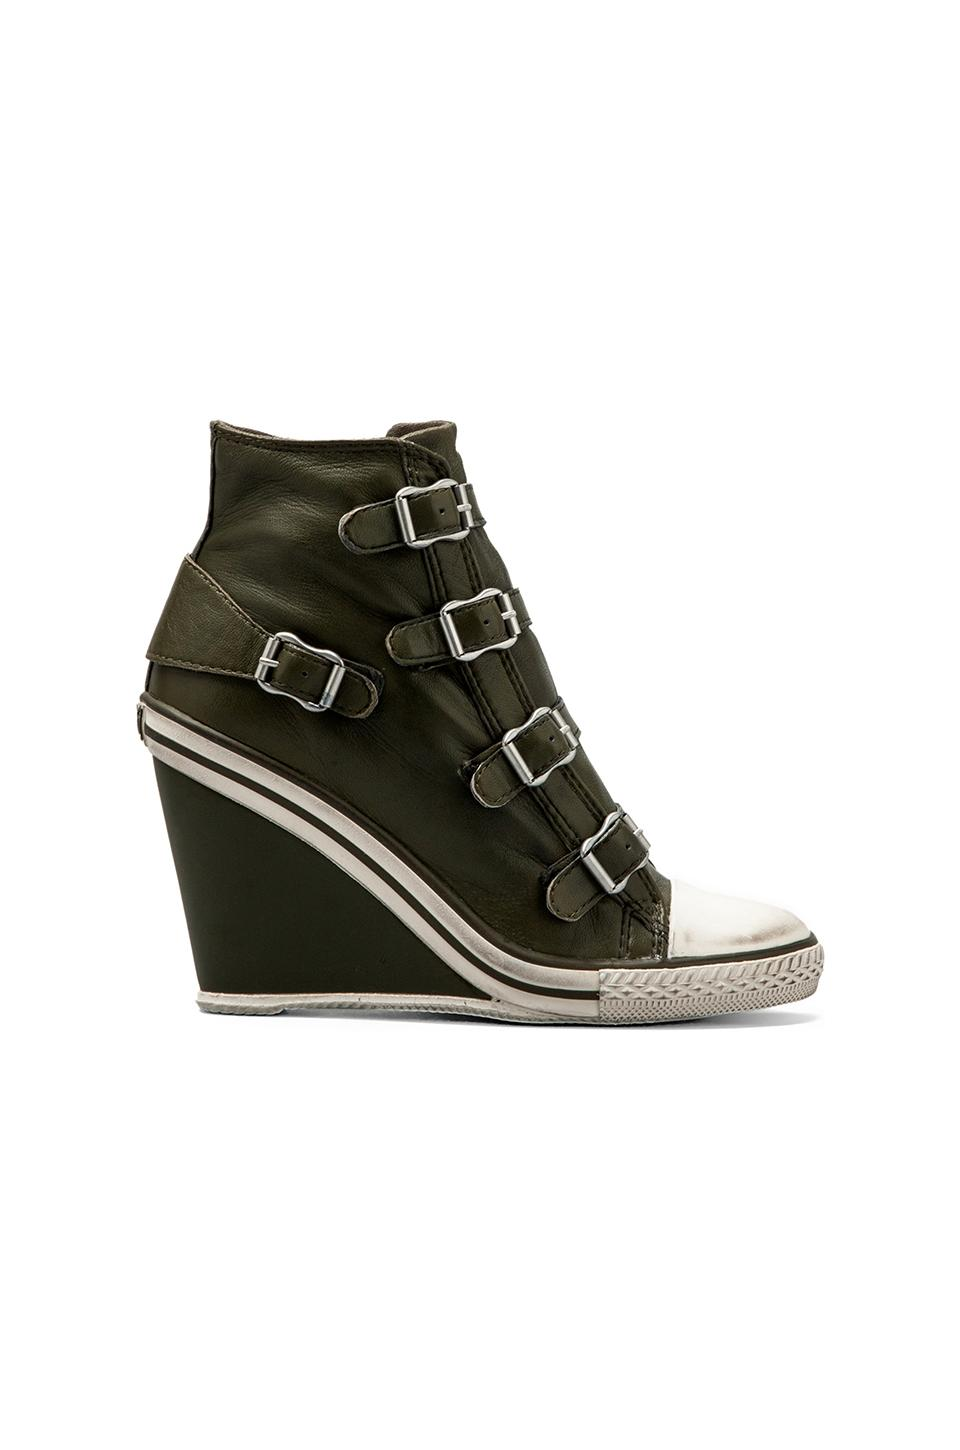 Ash Thelma Wedge Buckle Sneaker in Military